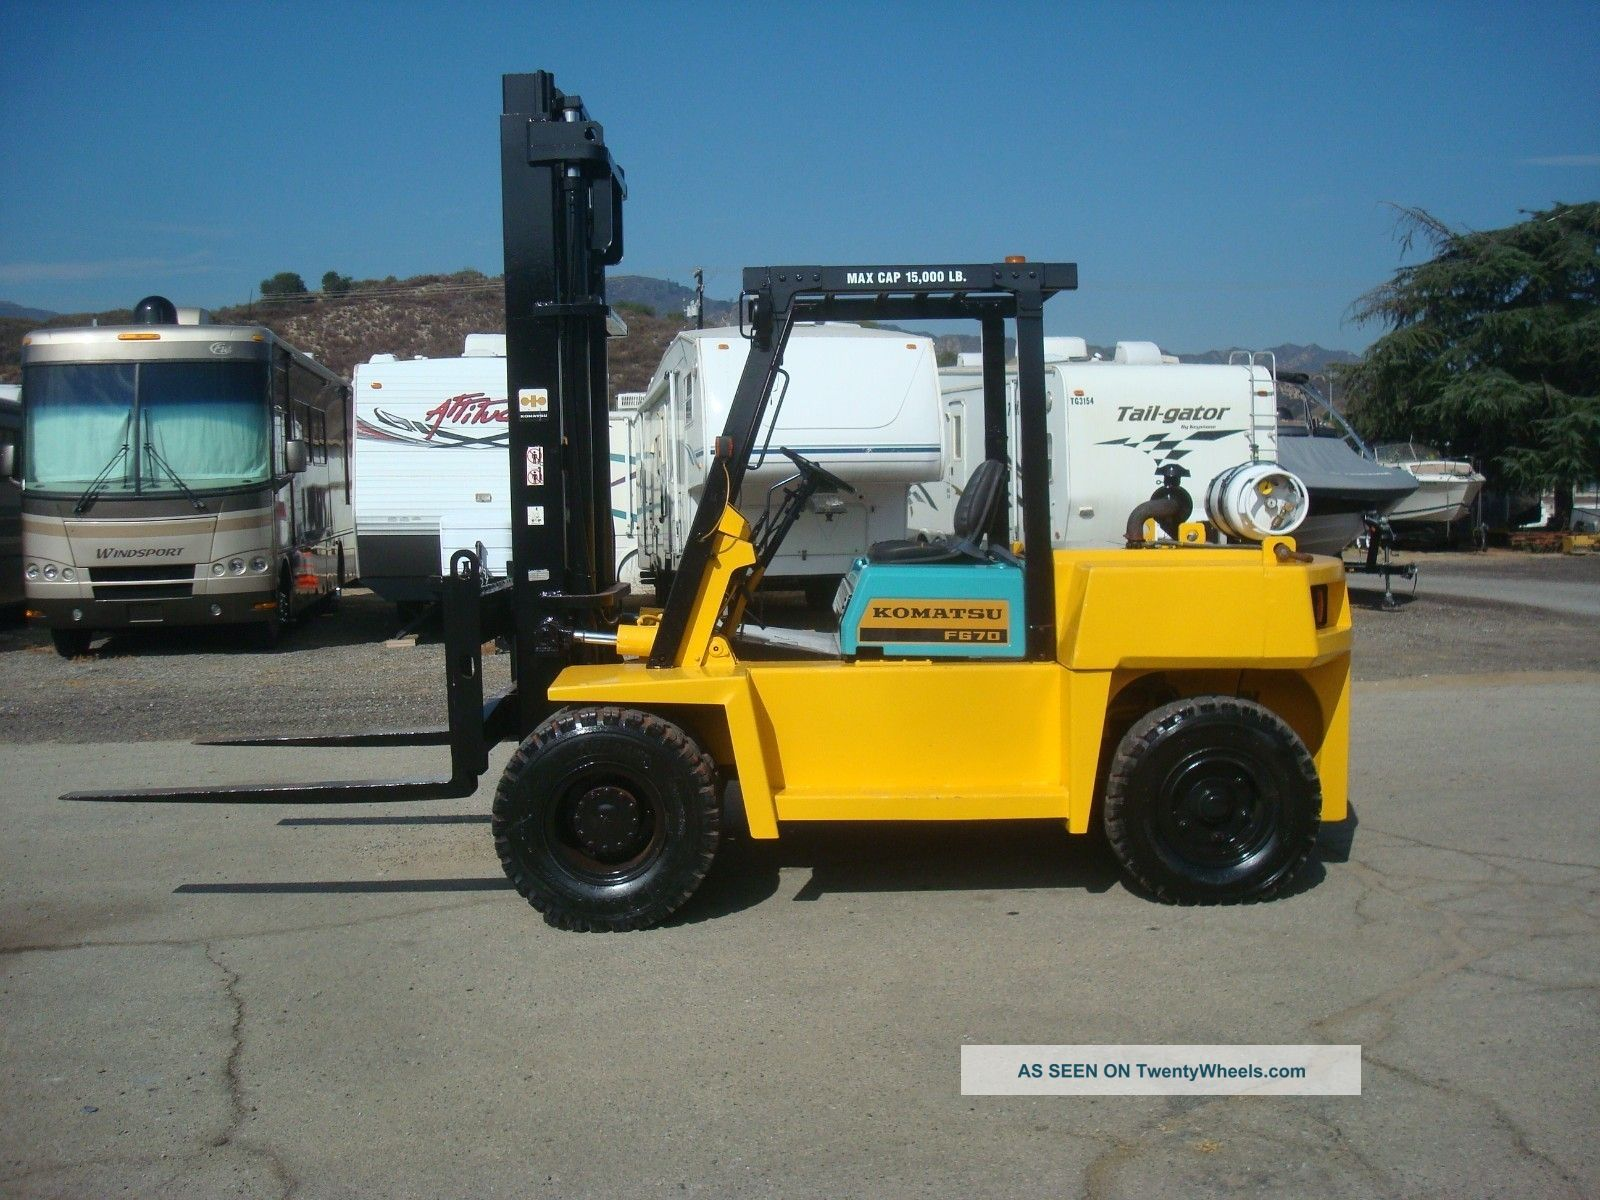 Heavy Duty Trucks Komatsu Bx50 Forklift Wiring Diagram Pictures Of